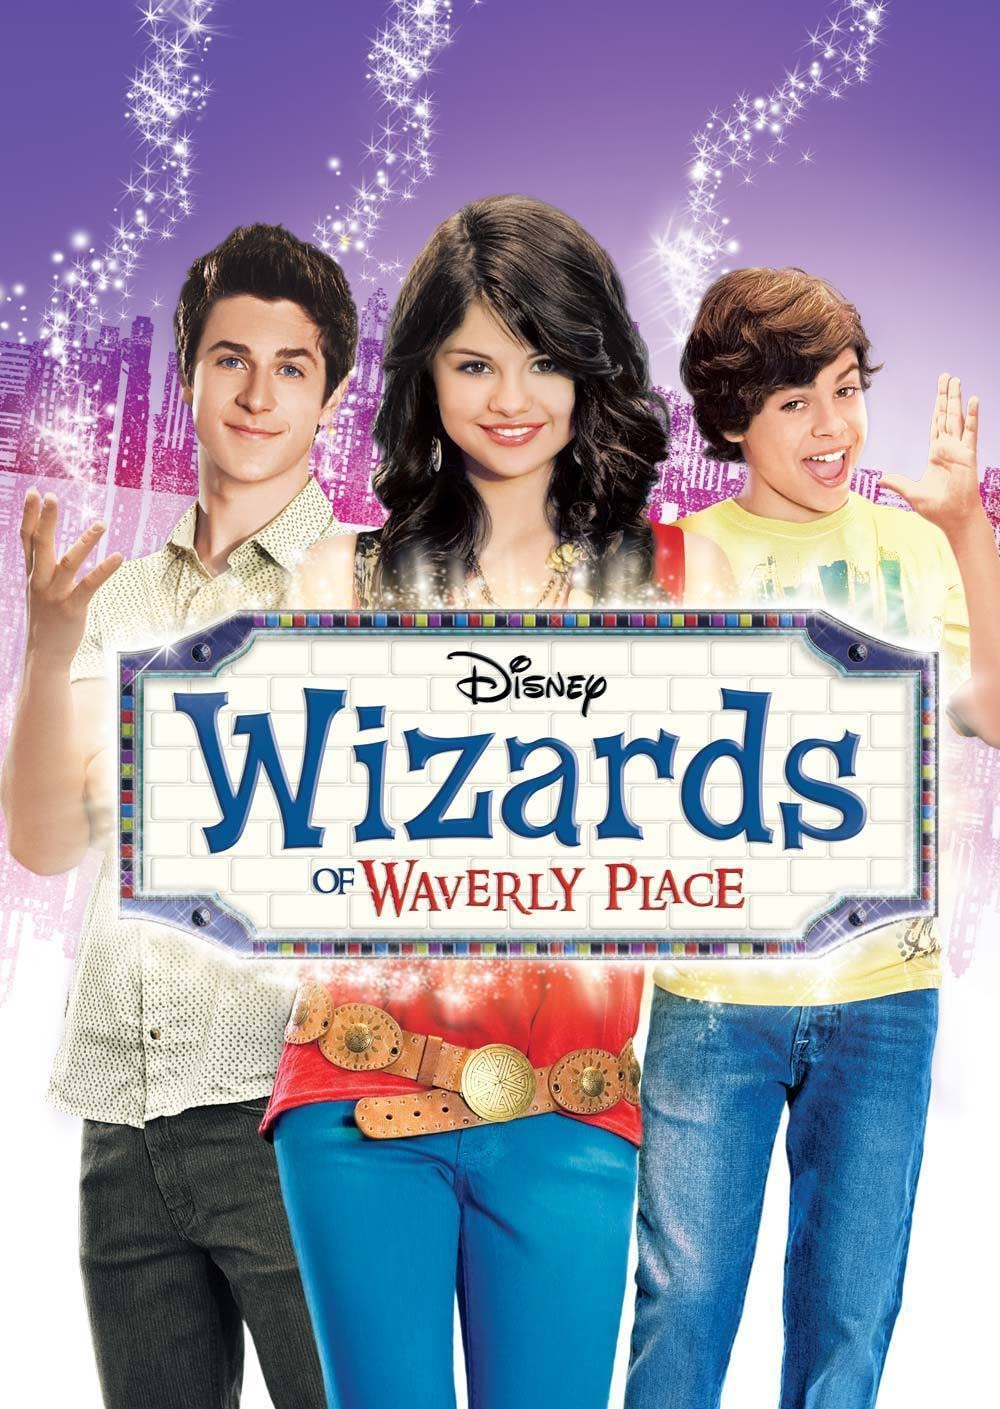 Wizards Of Waverly Place 2007 Wizards Of Waverly Wizards Of Waverly Place Waverly Place